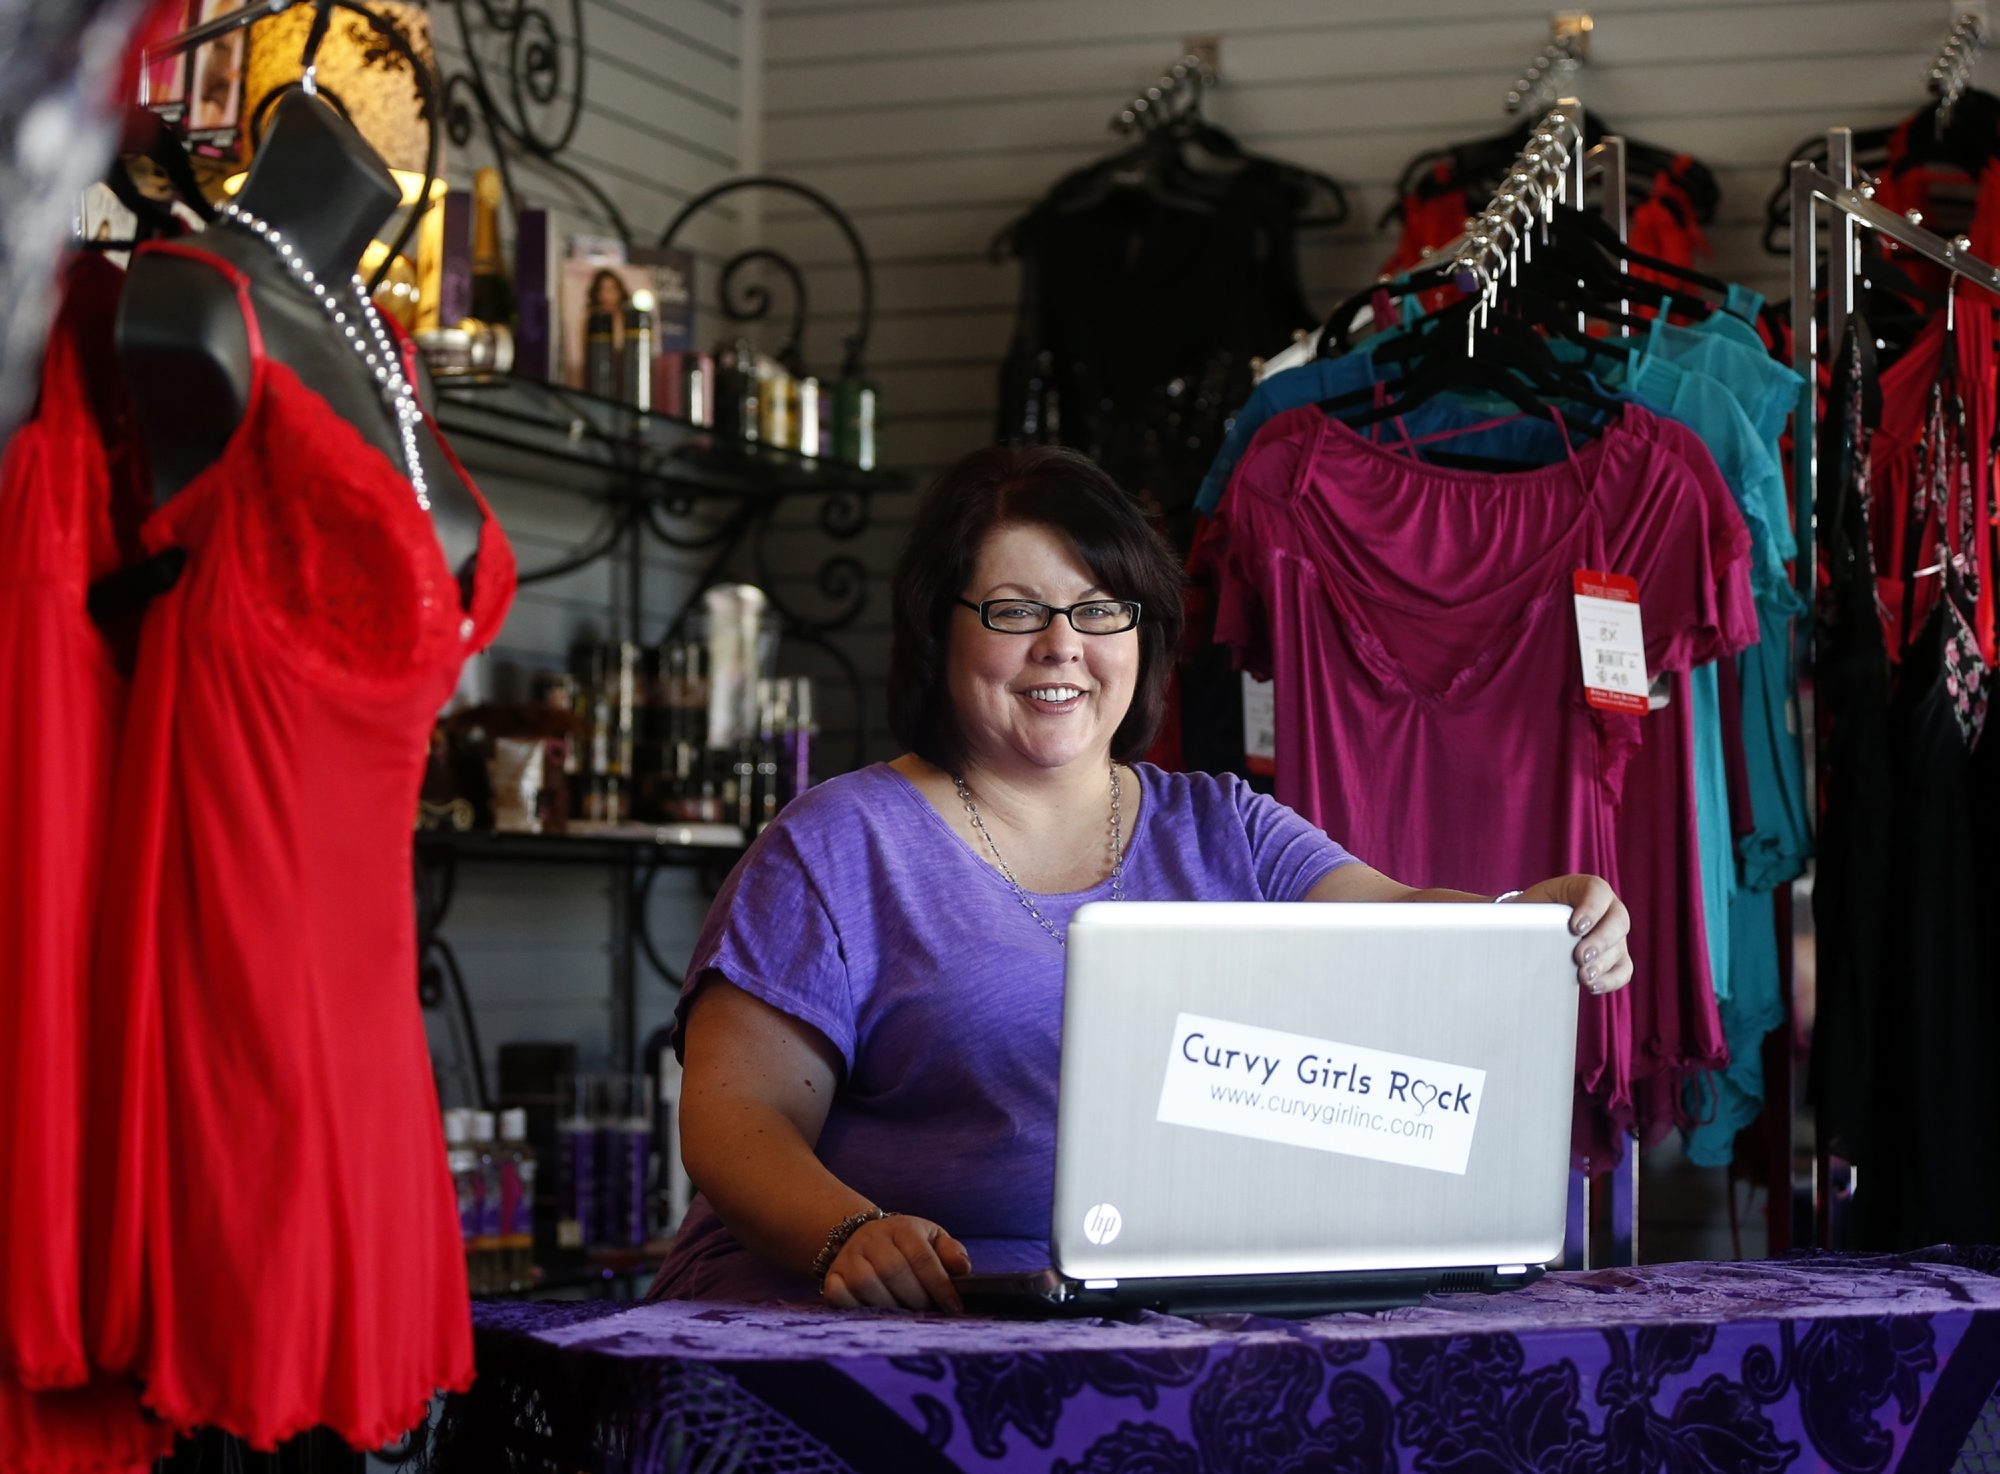 Chrystal Bougon is seen at her store Curvy Girl Lingerie in San Jose, Calif., on Monday, June 15, 2015. Small businesses like Curvy Girl Lingerie have been impacted since Facebook started limiting the number of unpaid promotional posts on its NewsFeed, which means a business' Facebook post won't be seen by everyone who likes their page. (Josie Lepe/Bay Area News Group/TNS)